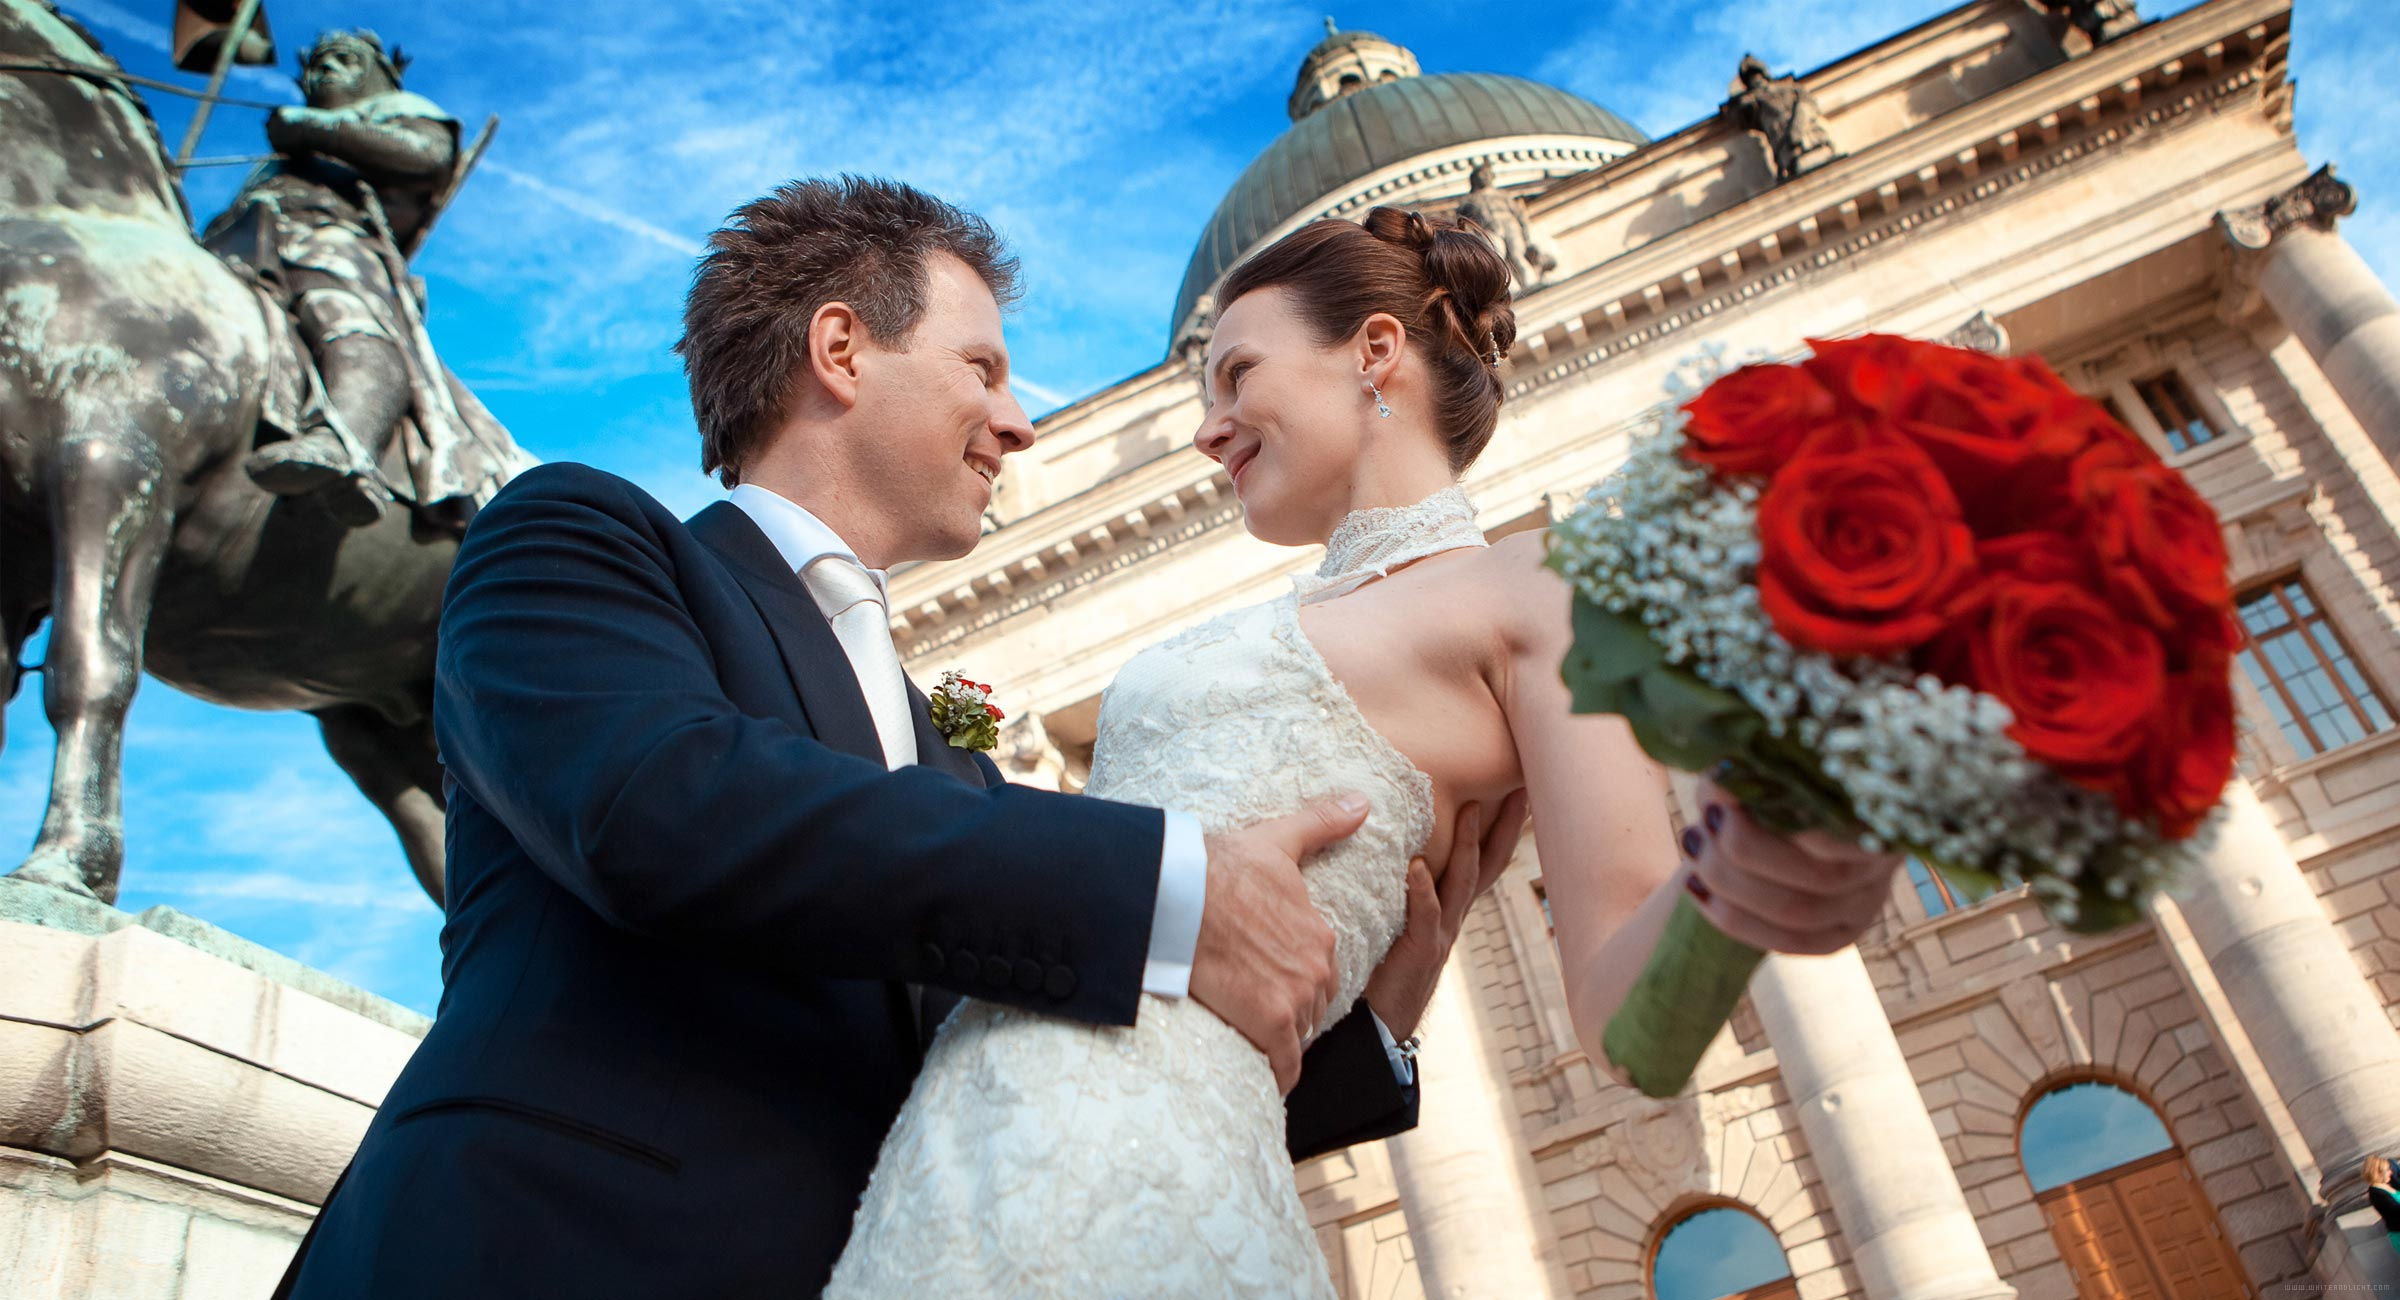 Wedding photographer Hofgarten